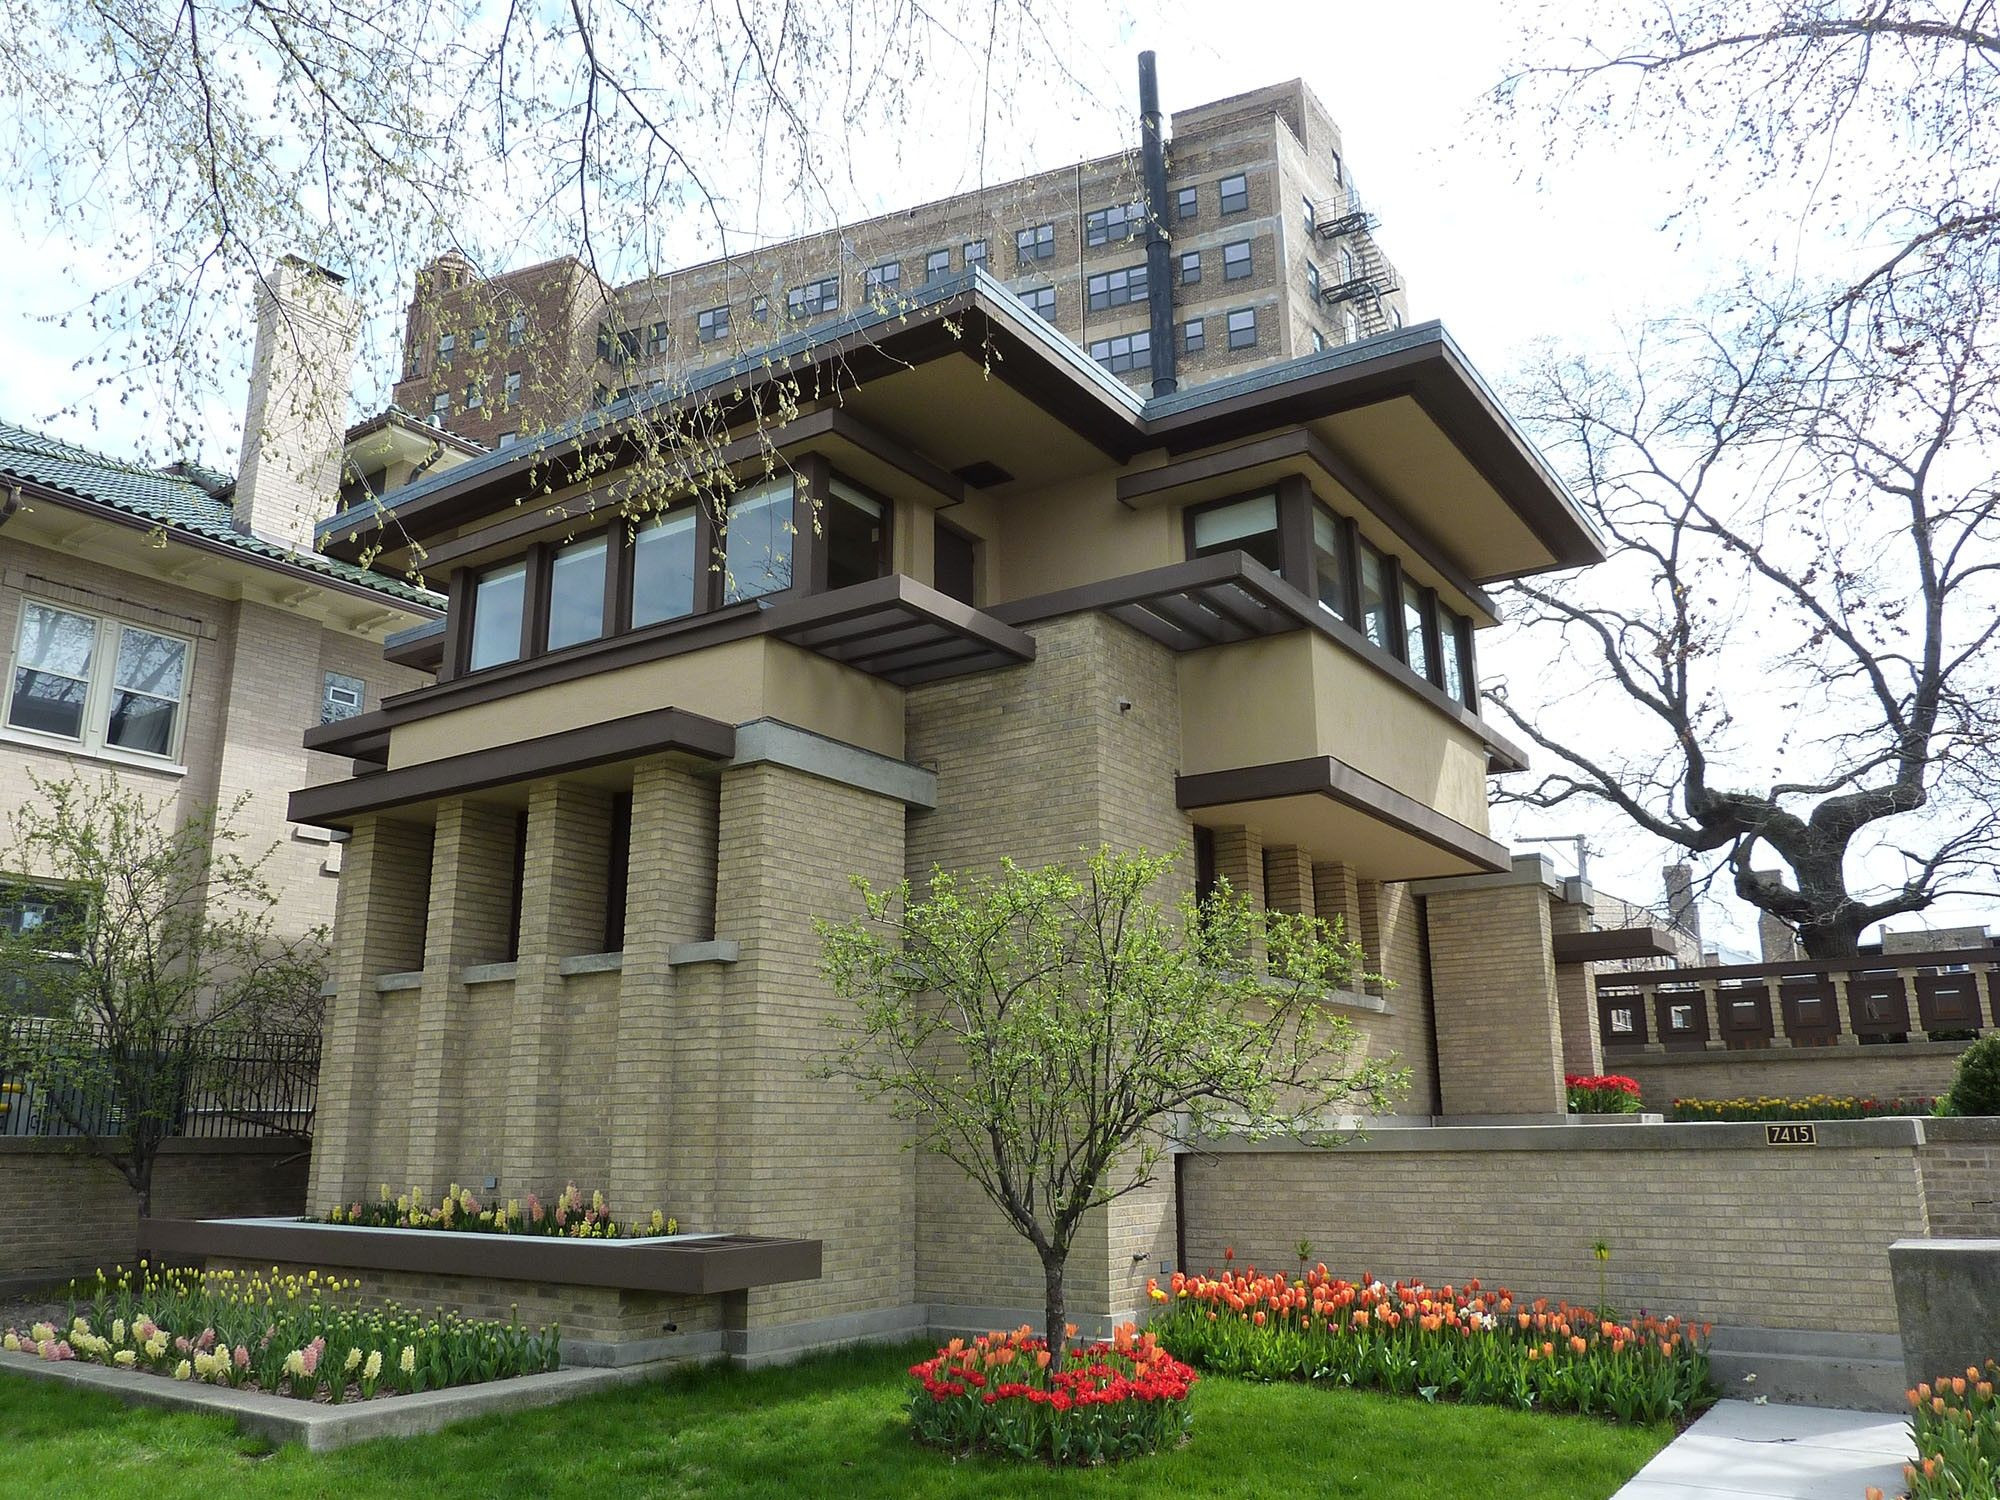 Frank lloyd wright 39 s prairie school architecture is often for Prairie school house plans